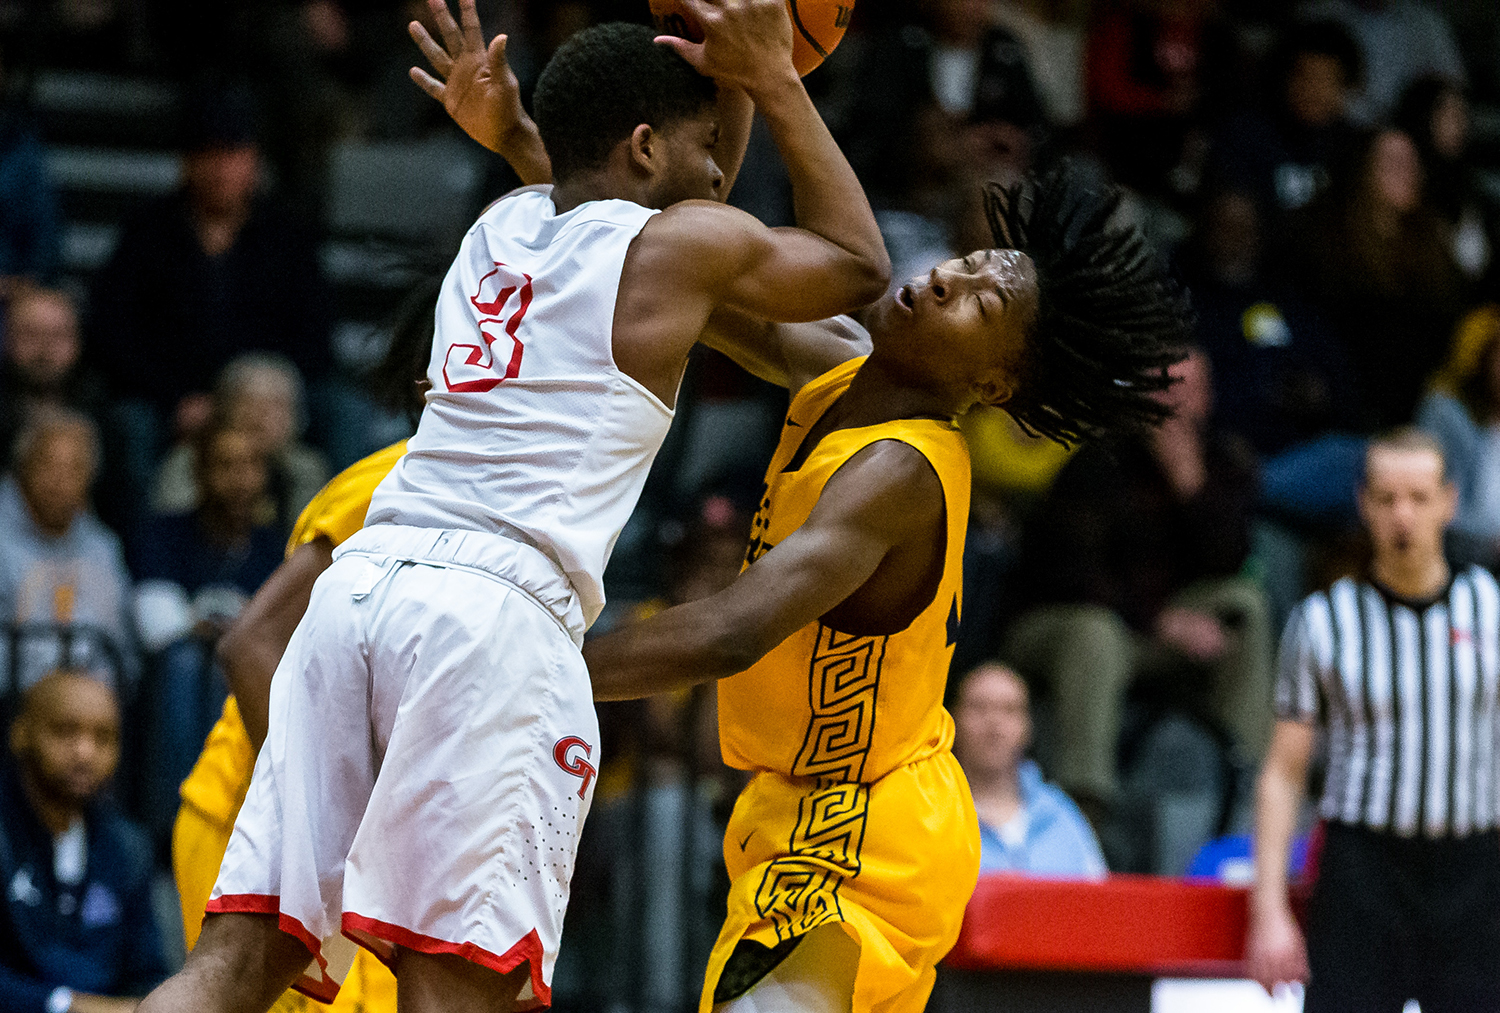 Southeast's Stepheon Sims (32) takes an elbow from Glenwood's Jason Hansbrough (3) while trying to force a turnover in the second half at Glenwood High School, Tuesday, Feb. 12, 2019, in Chatham, Ill. [Justin L. Fowler/The State Journal-Register]